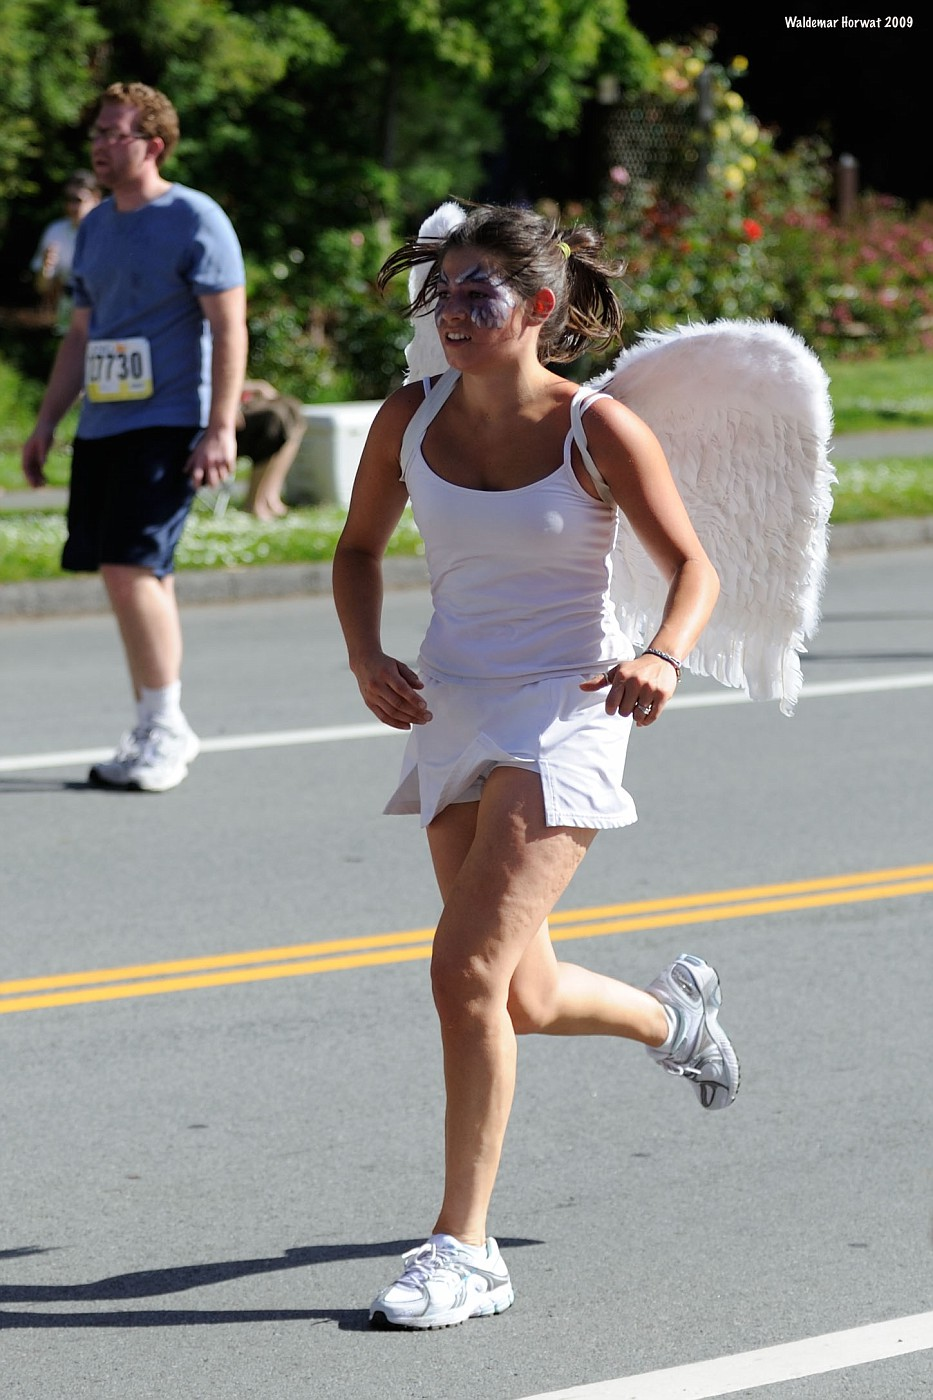 Angel Running